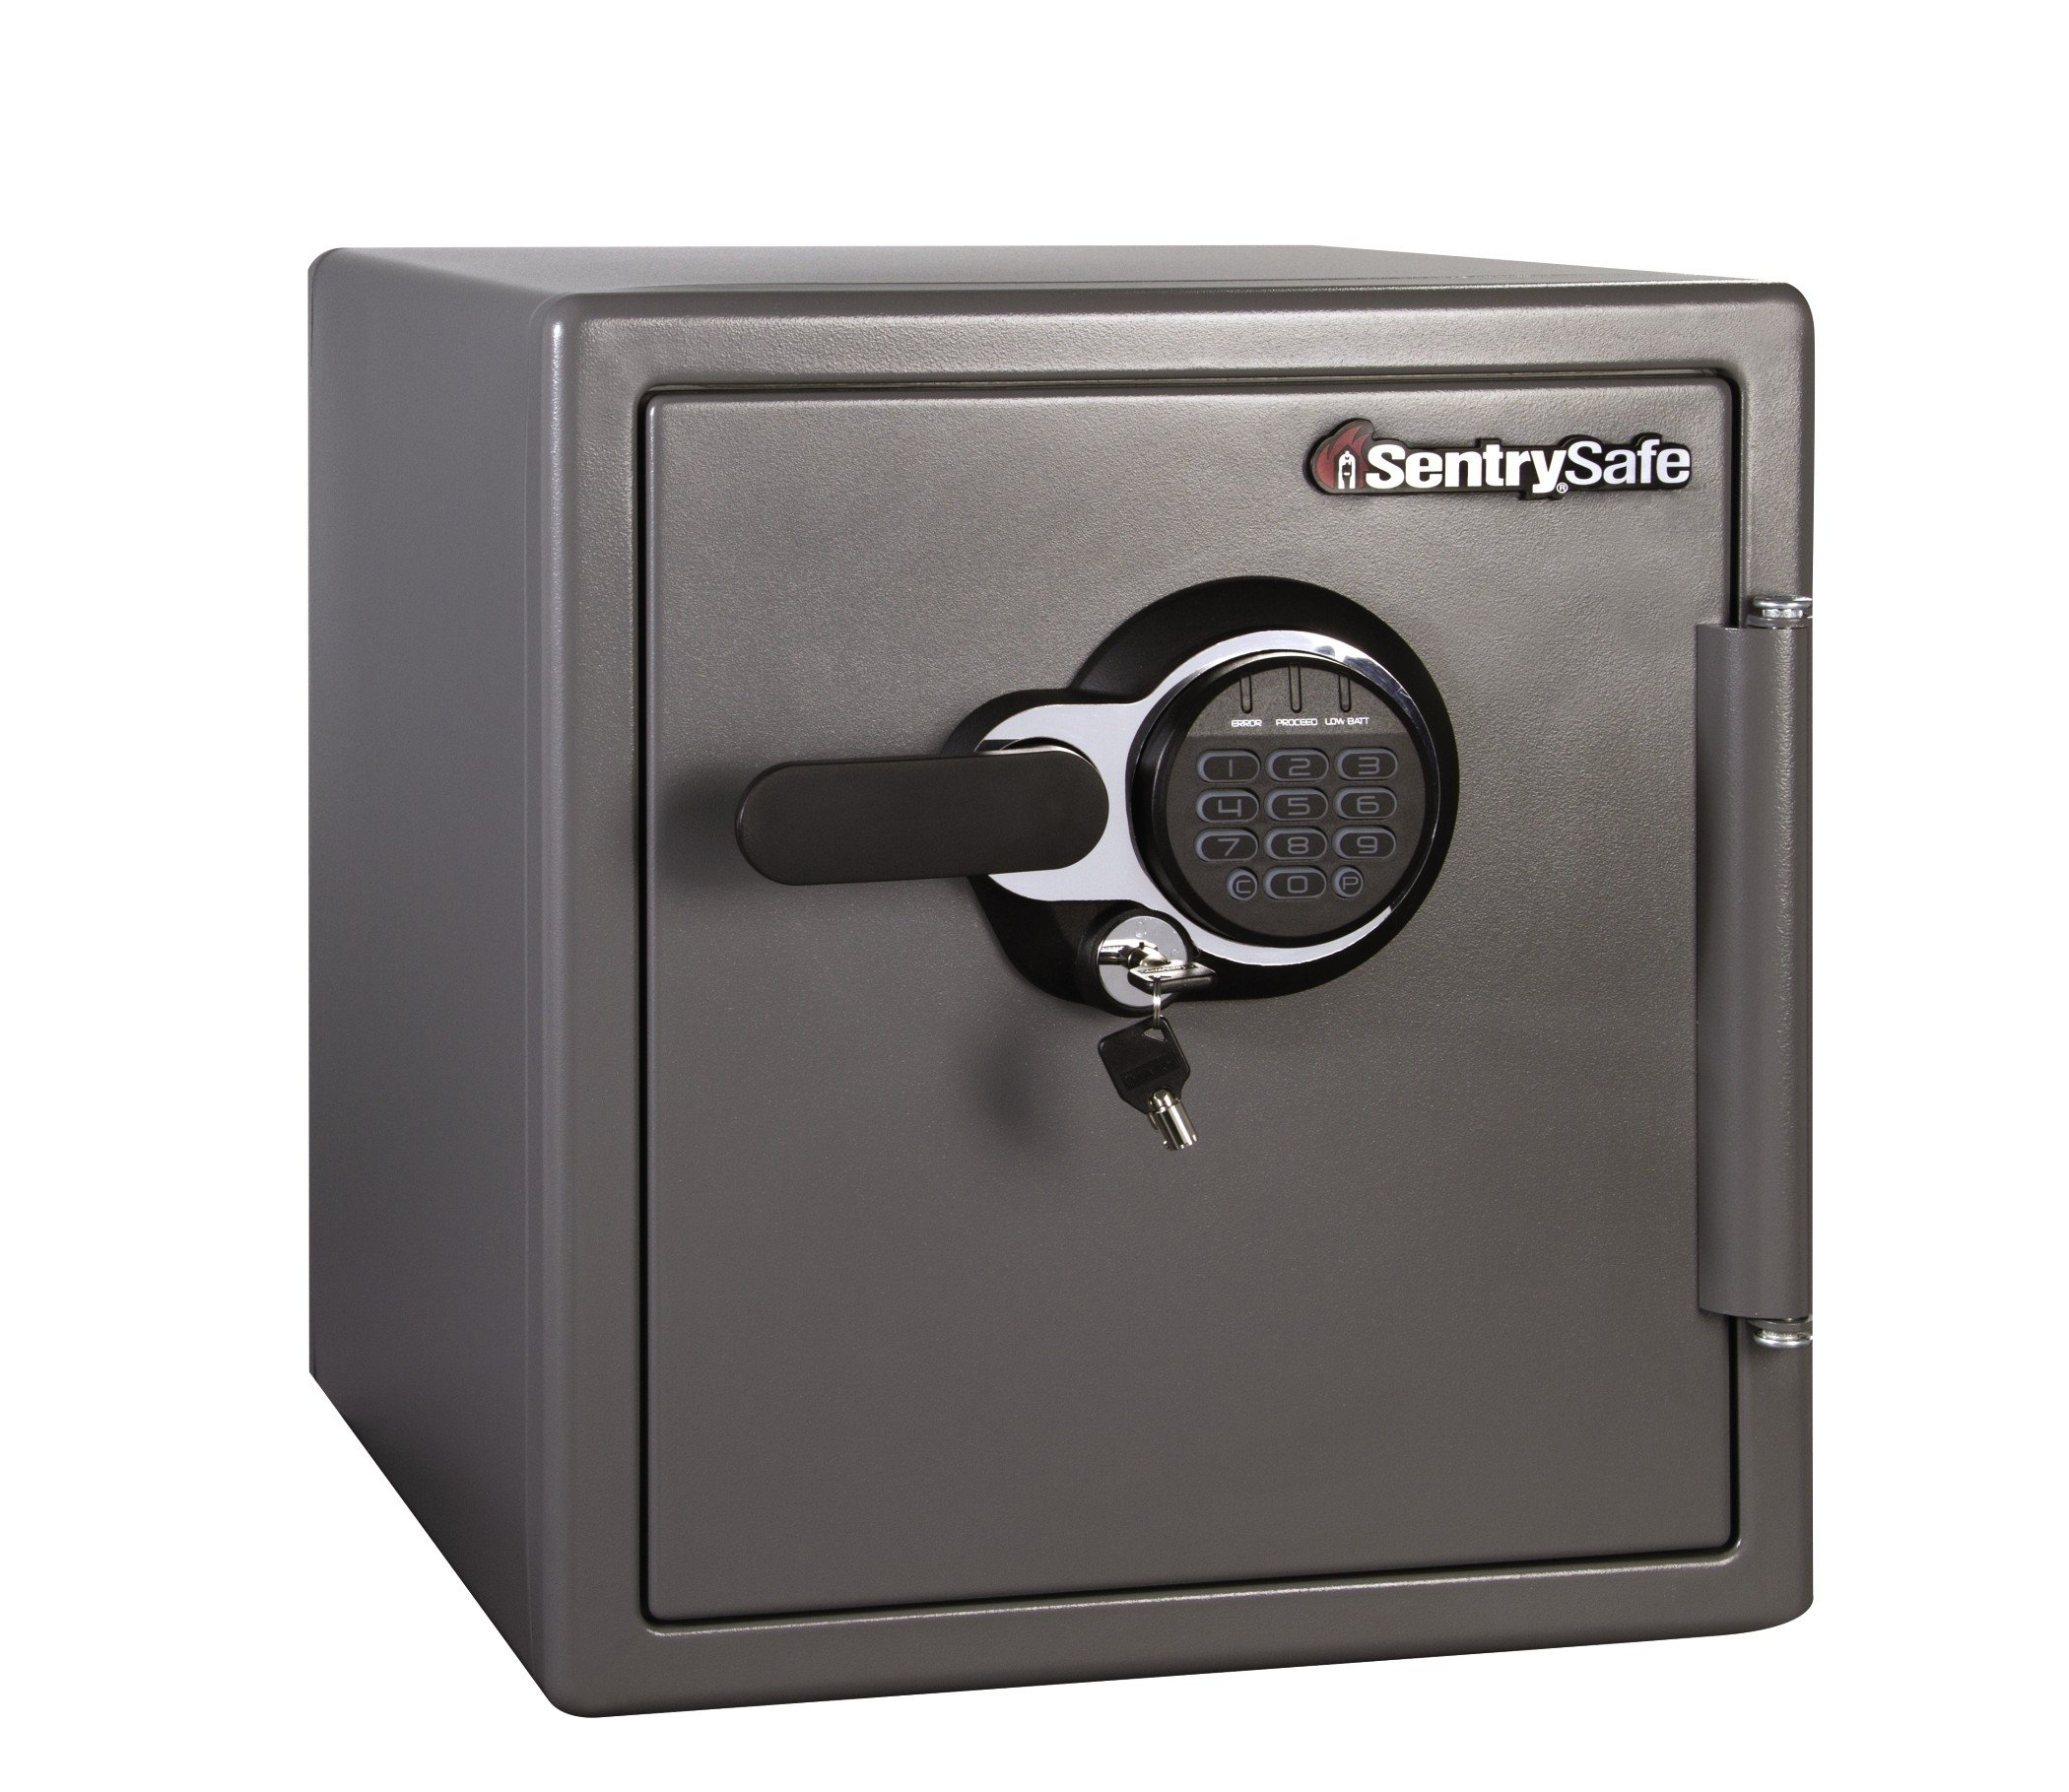 ... 23 Cubic Feet Electronic Fire-Safe, Gun Metal Grey: Home Improvement